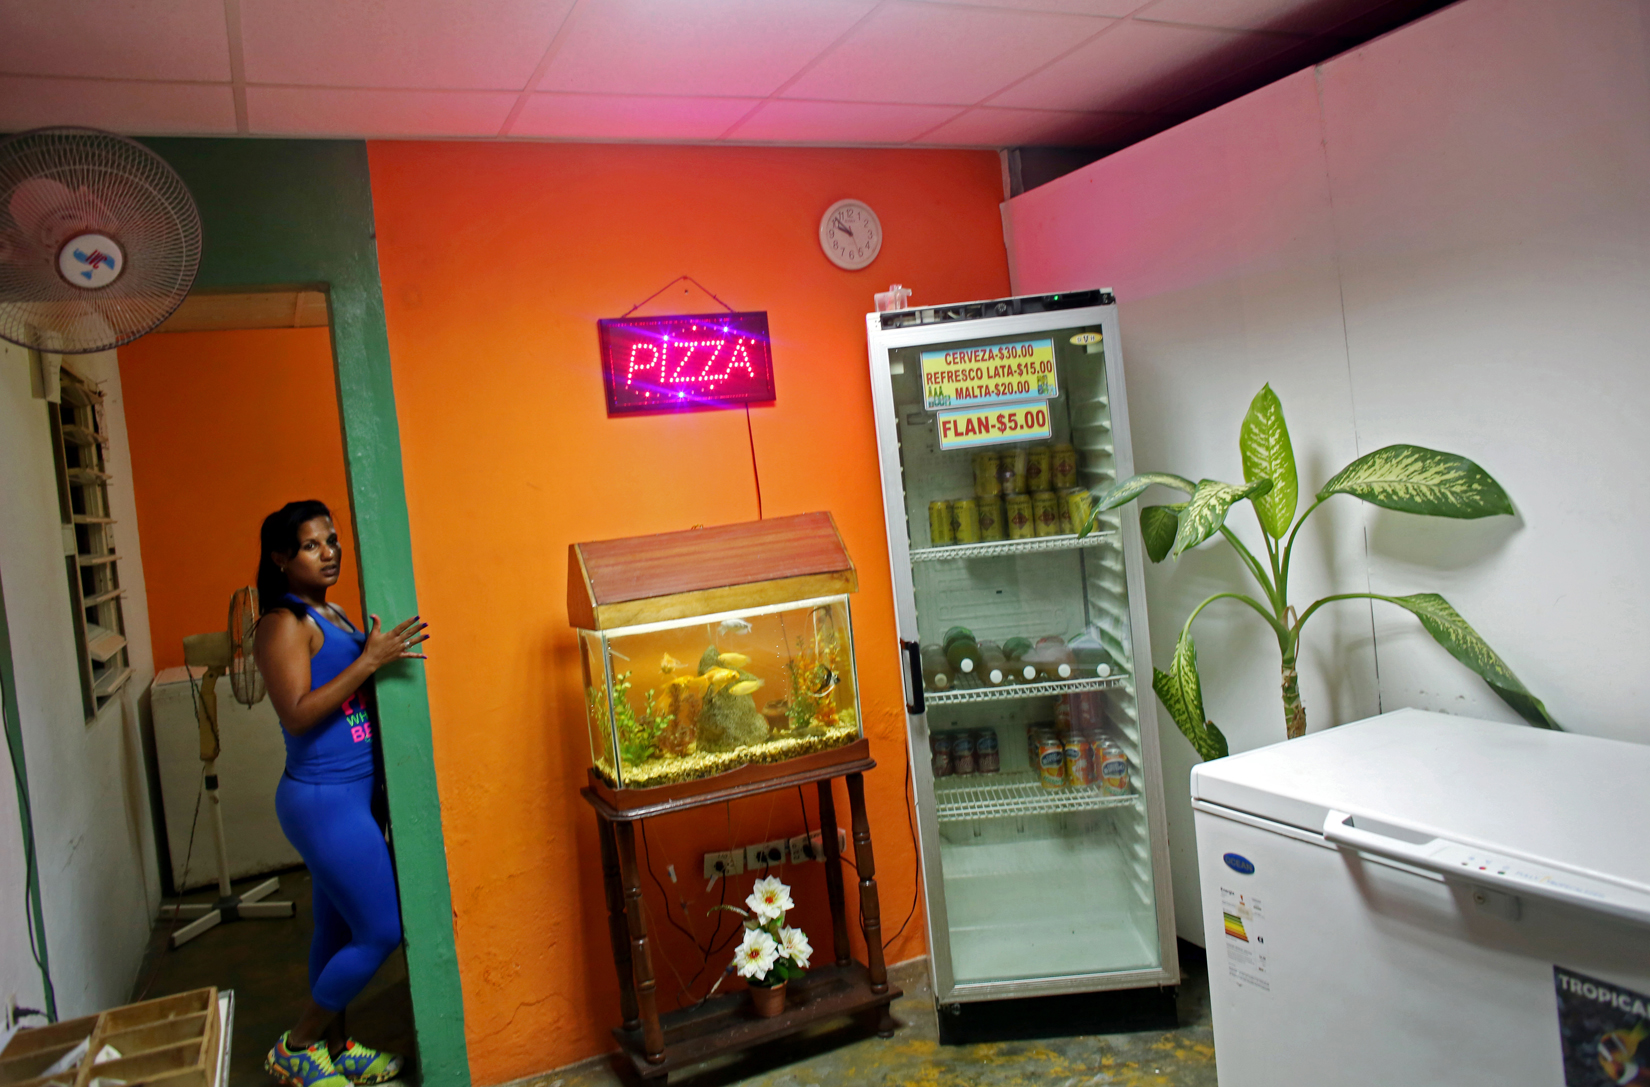 A girl takes orders in a late-night pizza joint, playing mostly American music from the 1980s and 1990s, in the port city of Mariel, Cuba, a town whose tranquil appearance belies its important place in both the history and future of Cuban-American interaction. It is where Russians unloaded nuclear warheads in the 1962 Cuban missile crisis, and the gateway through which 125,000 Miami-bound emigres fled during the Mariel Boatlift of 1980. The town is now the site of construction of a deepwater container port and a free-trade zone, a critical ingredient for which will be the future of the U.S. embargo against Cuba, in place for more than 50 years but now under speculation of being lifted.